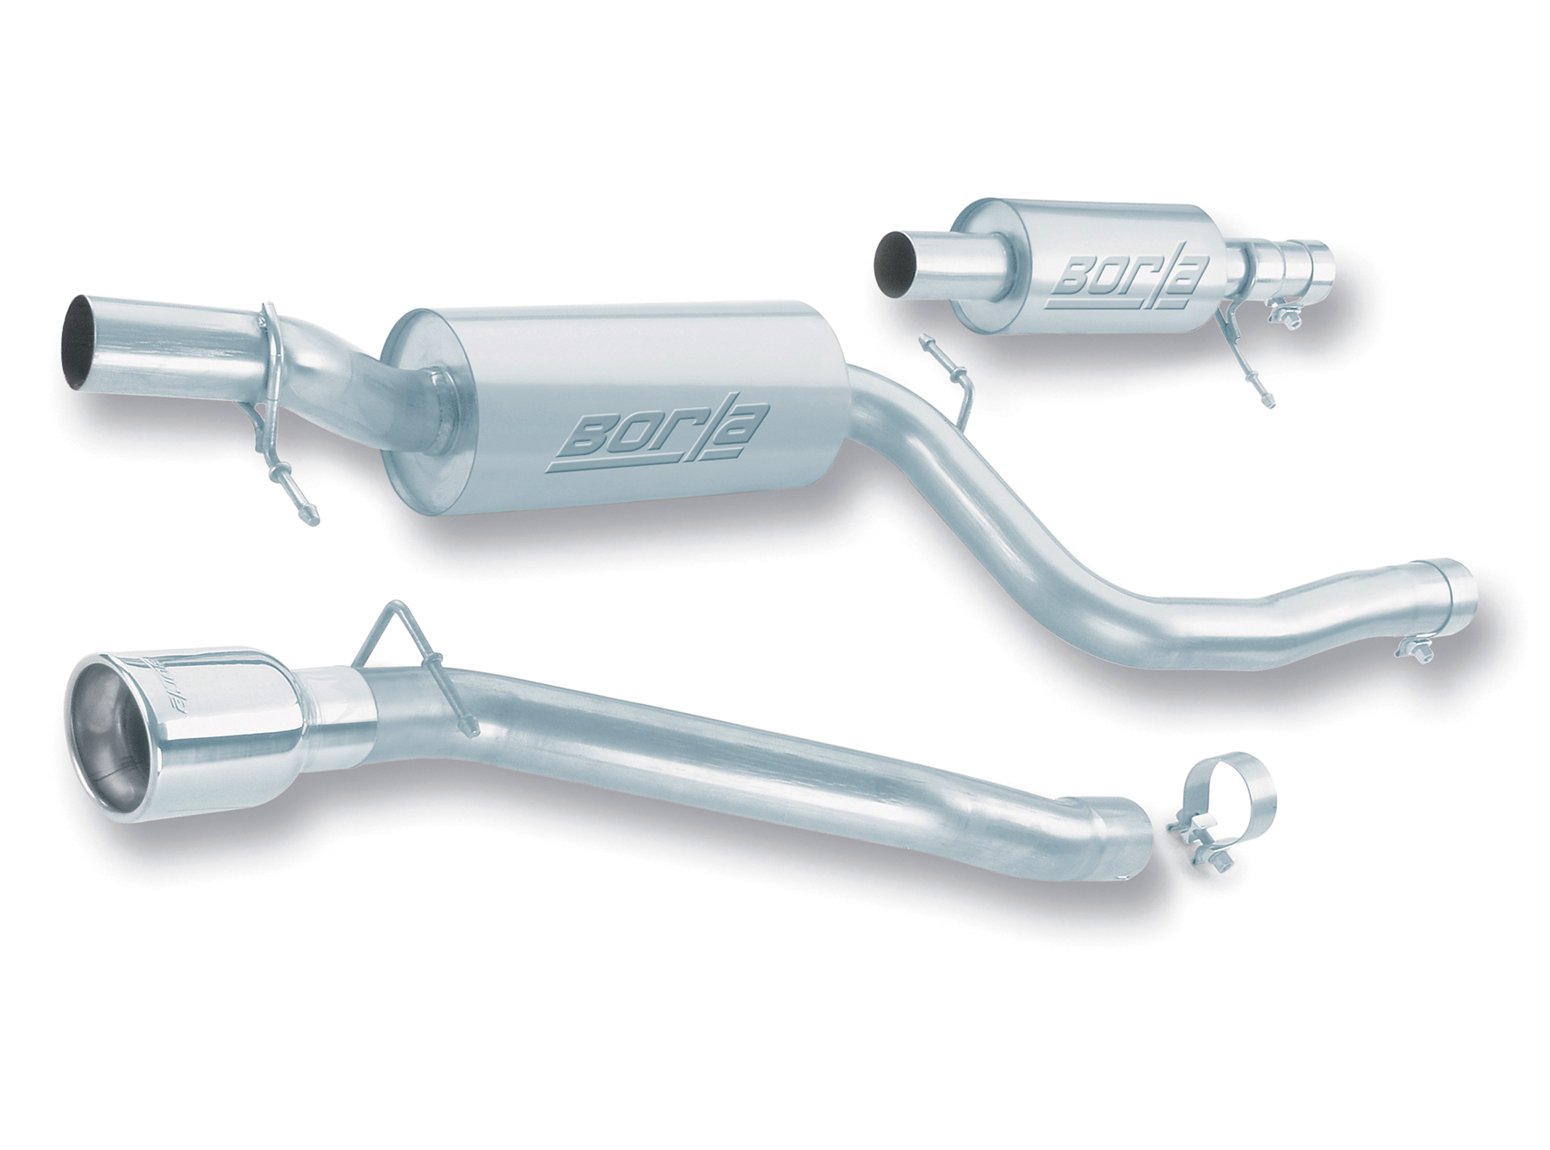 "Mazda Mazda 3 2.3l 4cyl 5dr 2004-2009 Borla 2.5"" Cat-Back Exhaust System - Single Round Rolled Angle-Cut Lined"